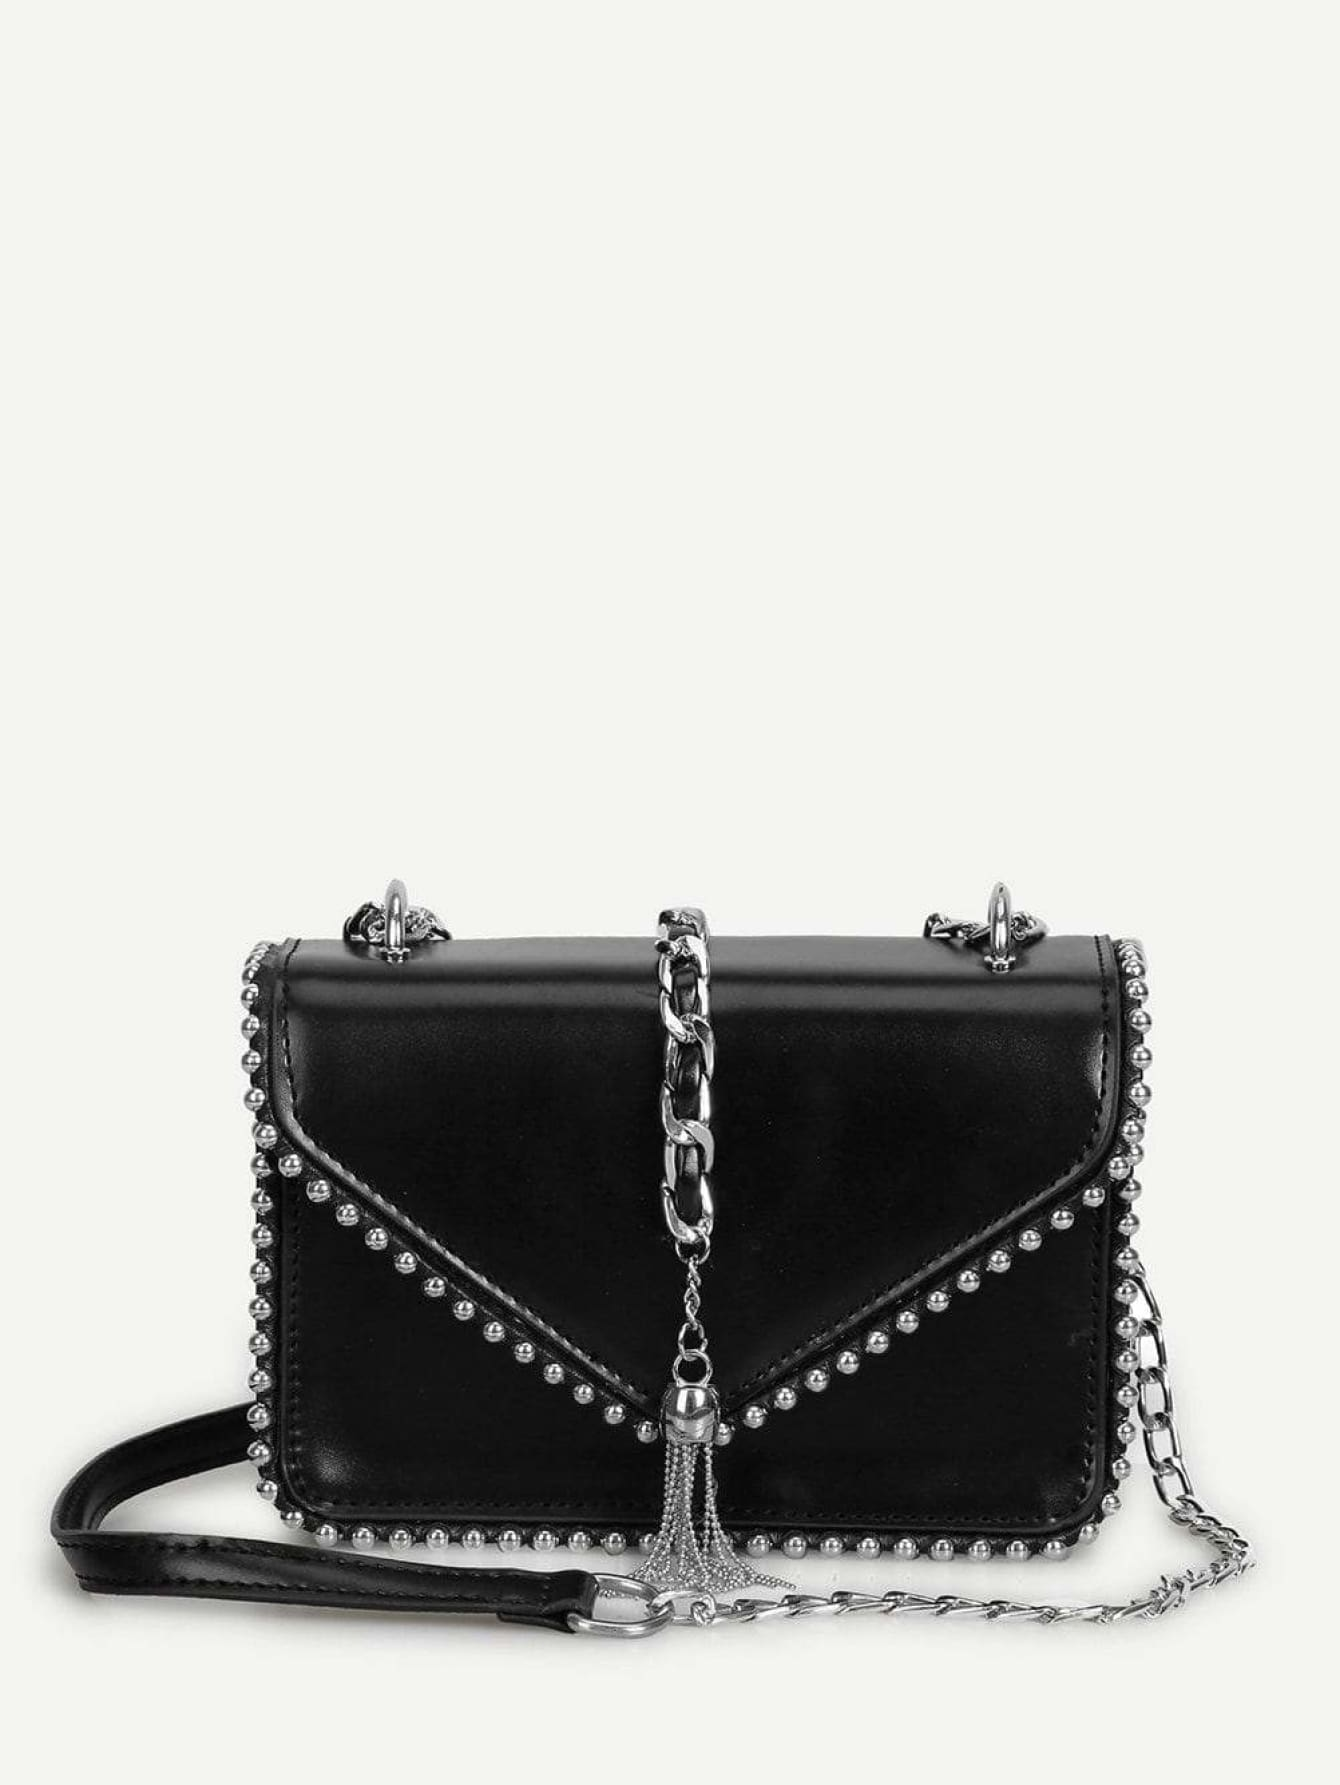 Tassel Detail Beaded Chain Bag